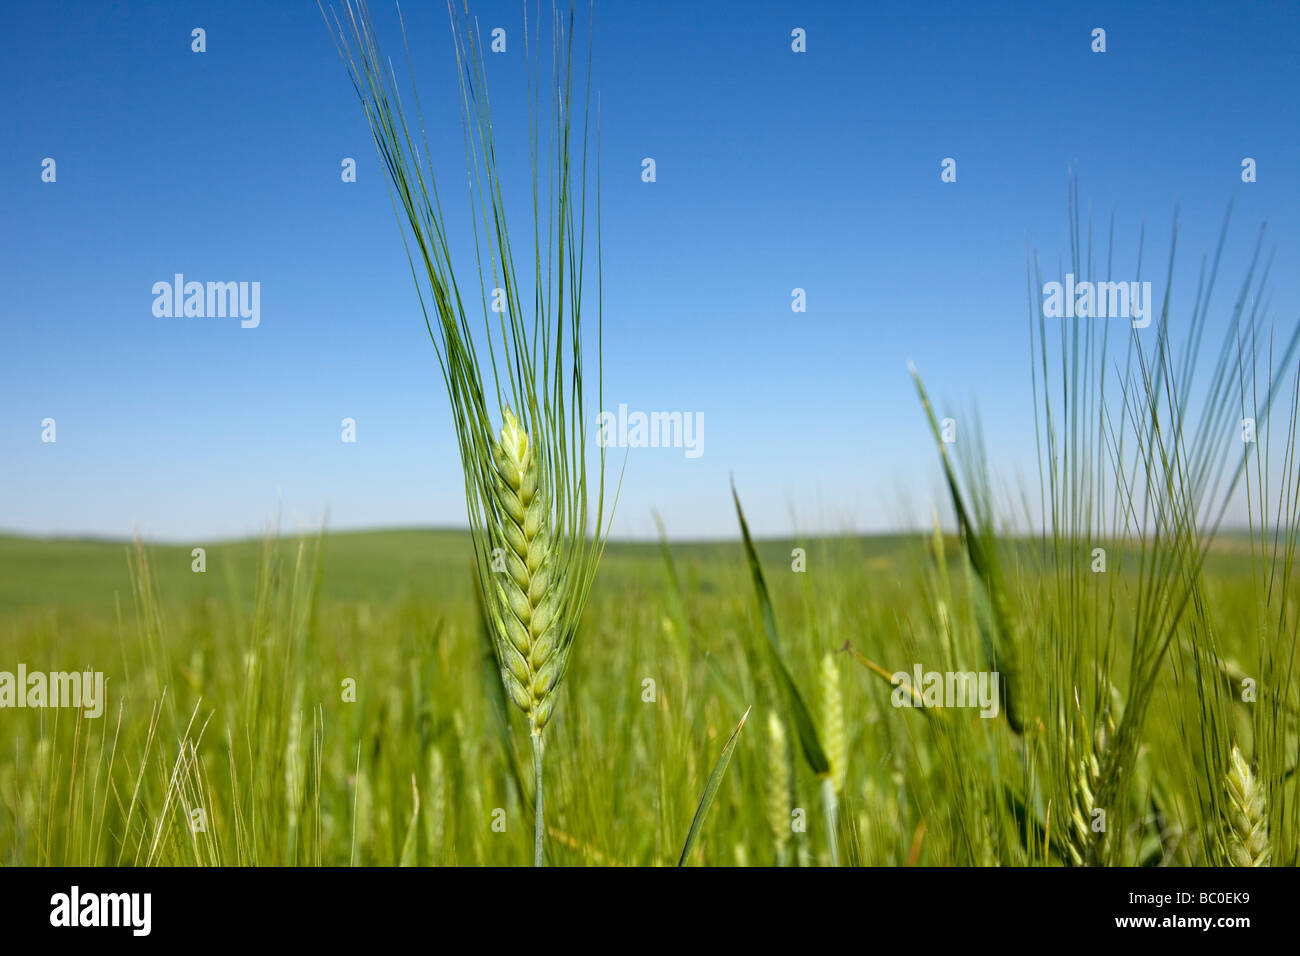 Espiga de Trigo Wheat spike - Stock Image